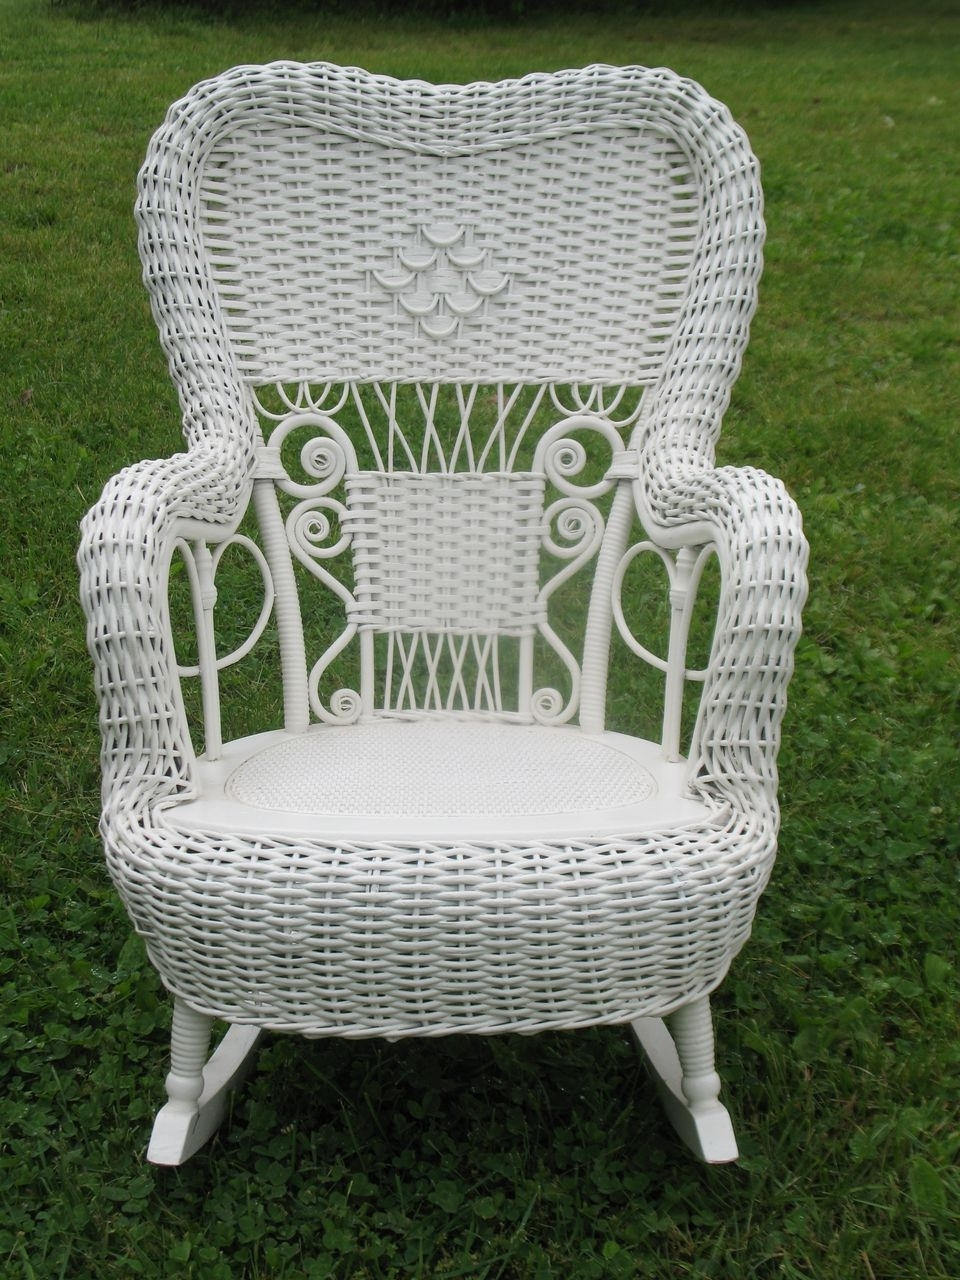 Most Recently Released Antique Wicker Furniture Prices – Image Antique And Candle Pertaining To Antique Wicker Rocking Chairs (View 9 of 15)